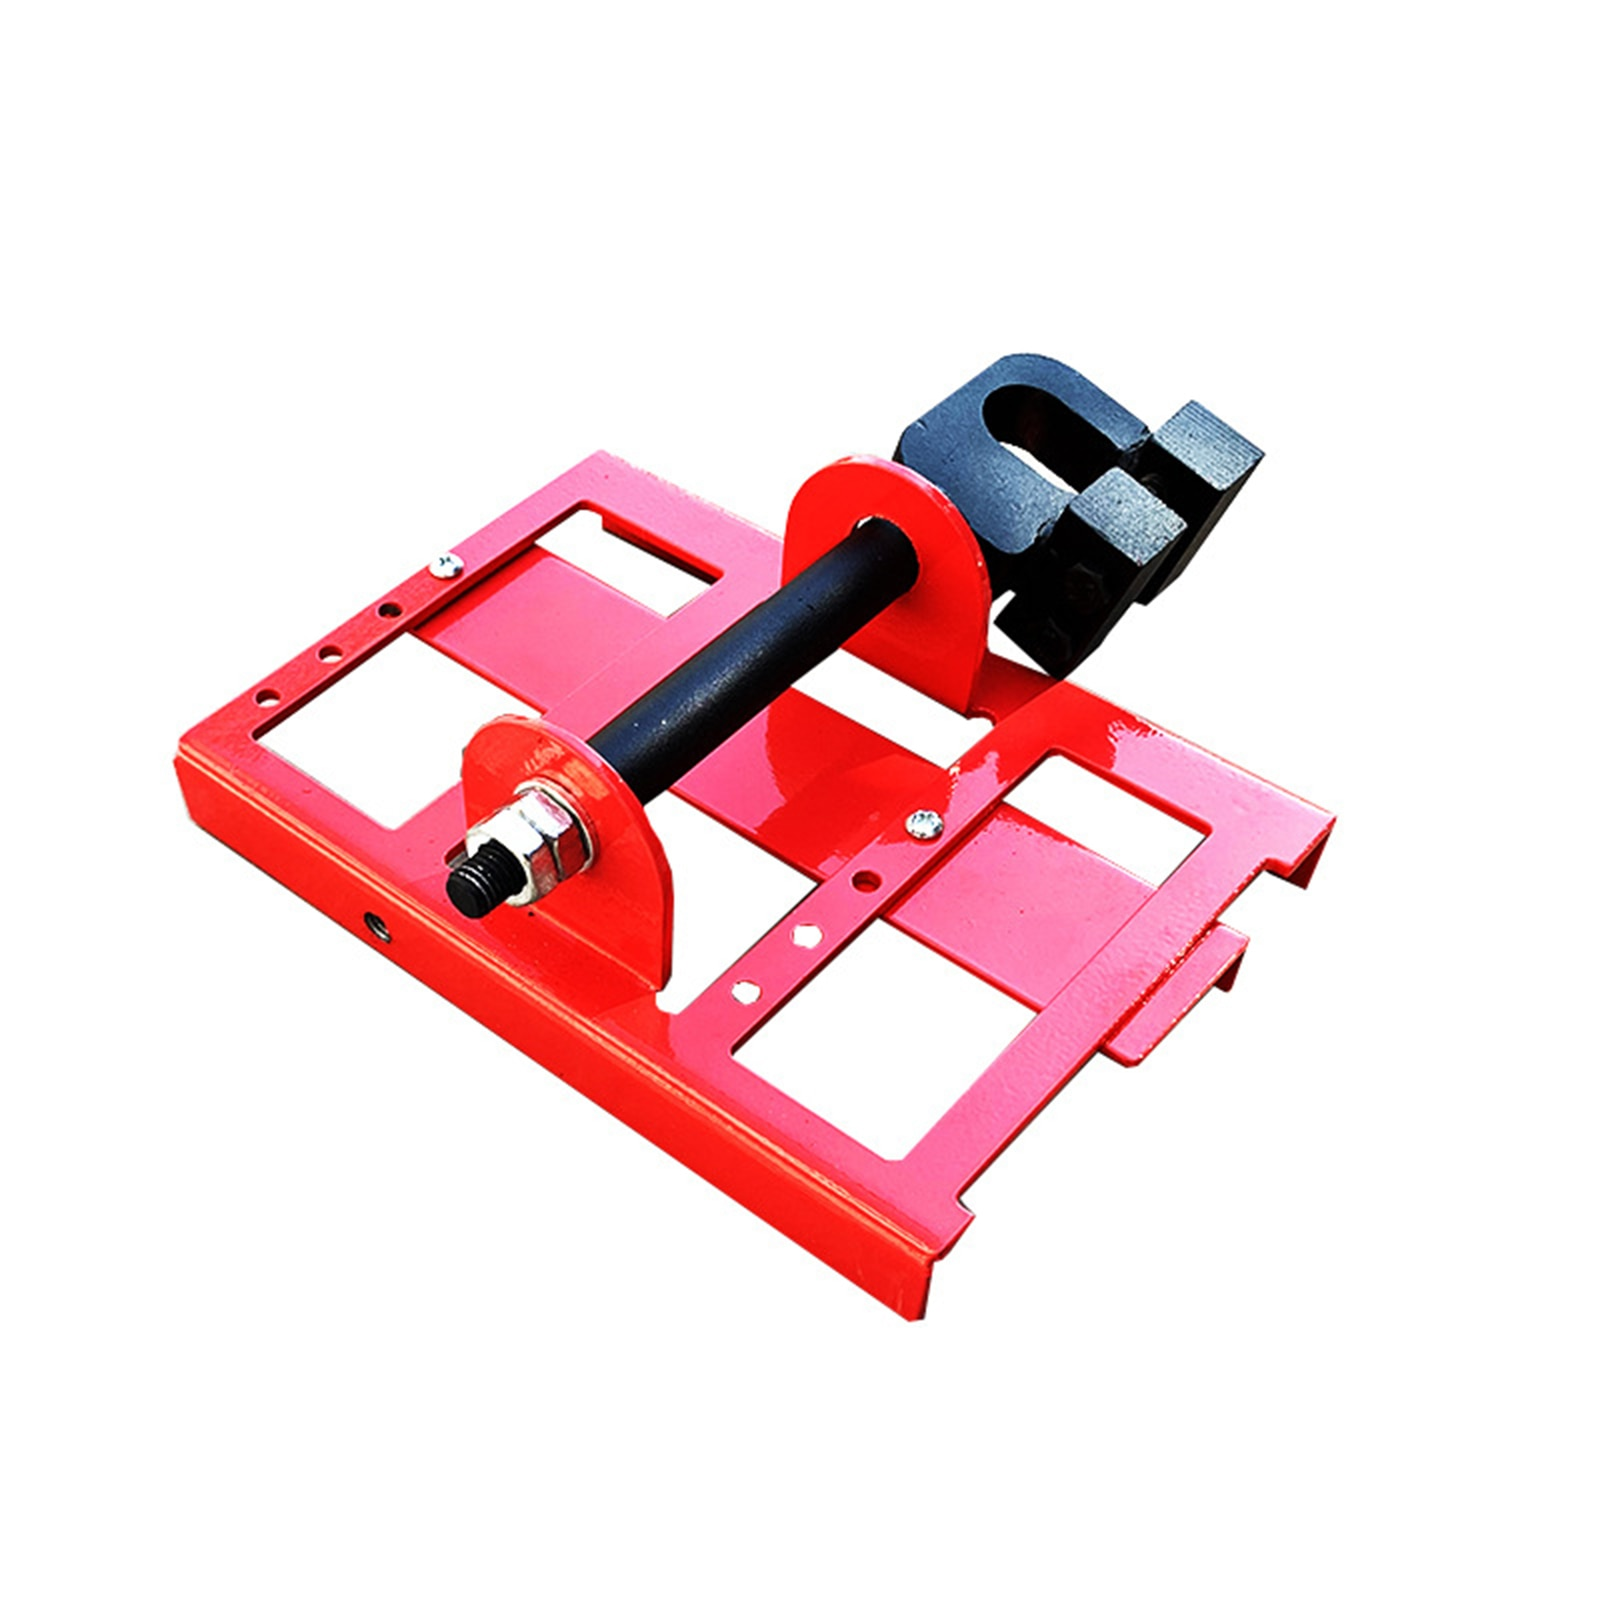 Practical Attachment Builders Construction Open Frame Timber Mini Portable Guide Bar Accessories Lumber Cutting Chainsaw Mill